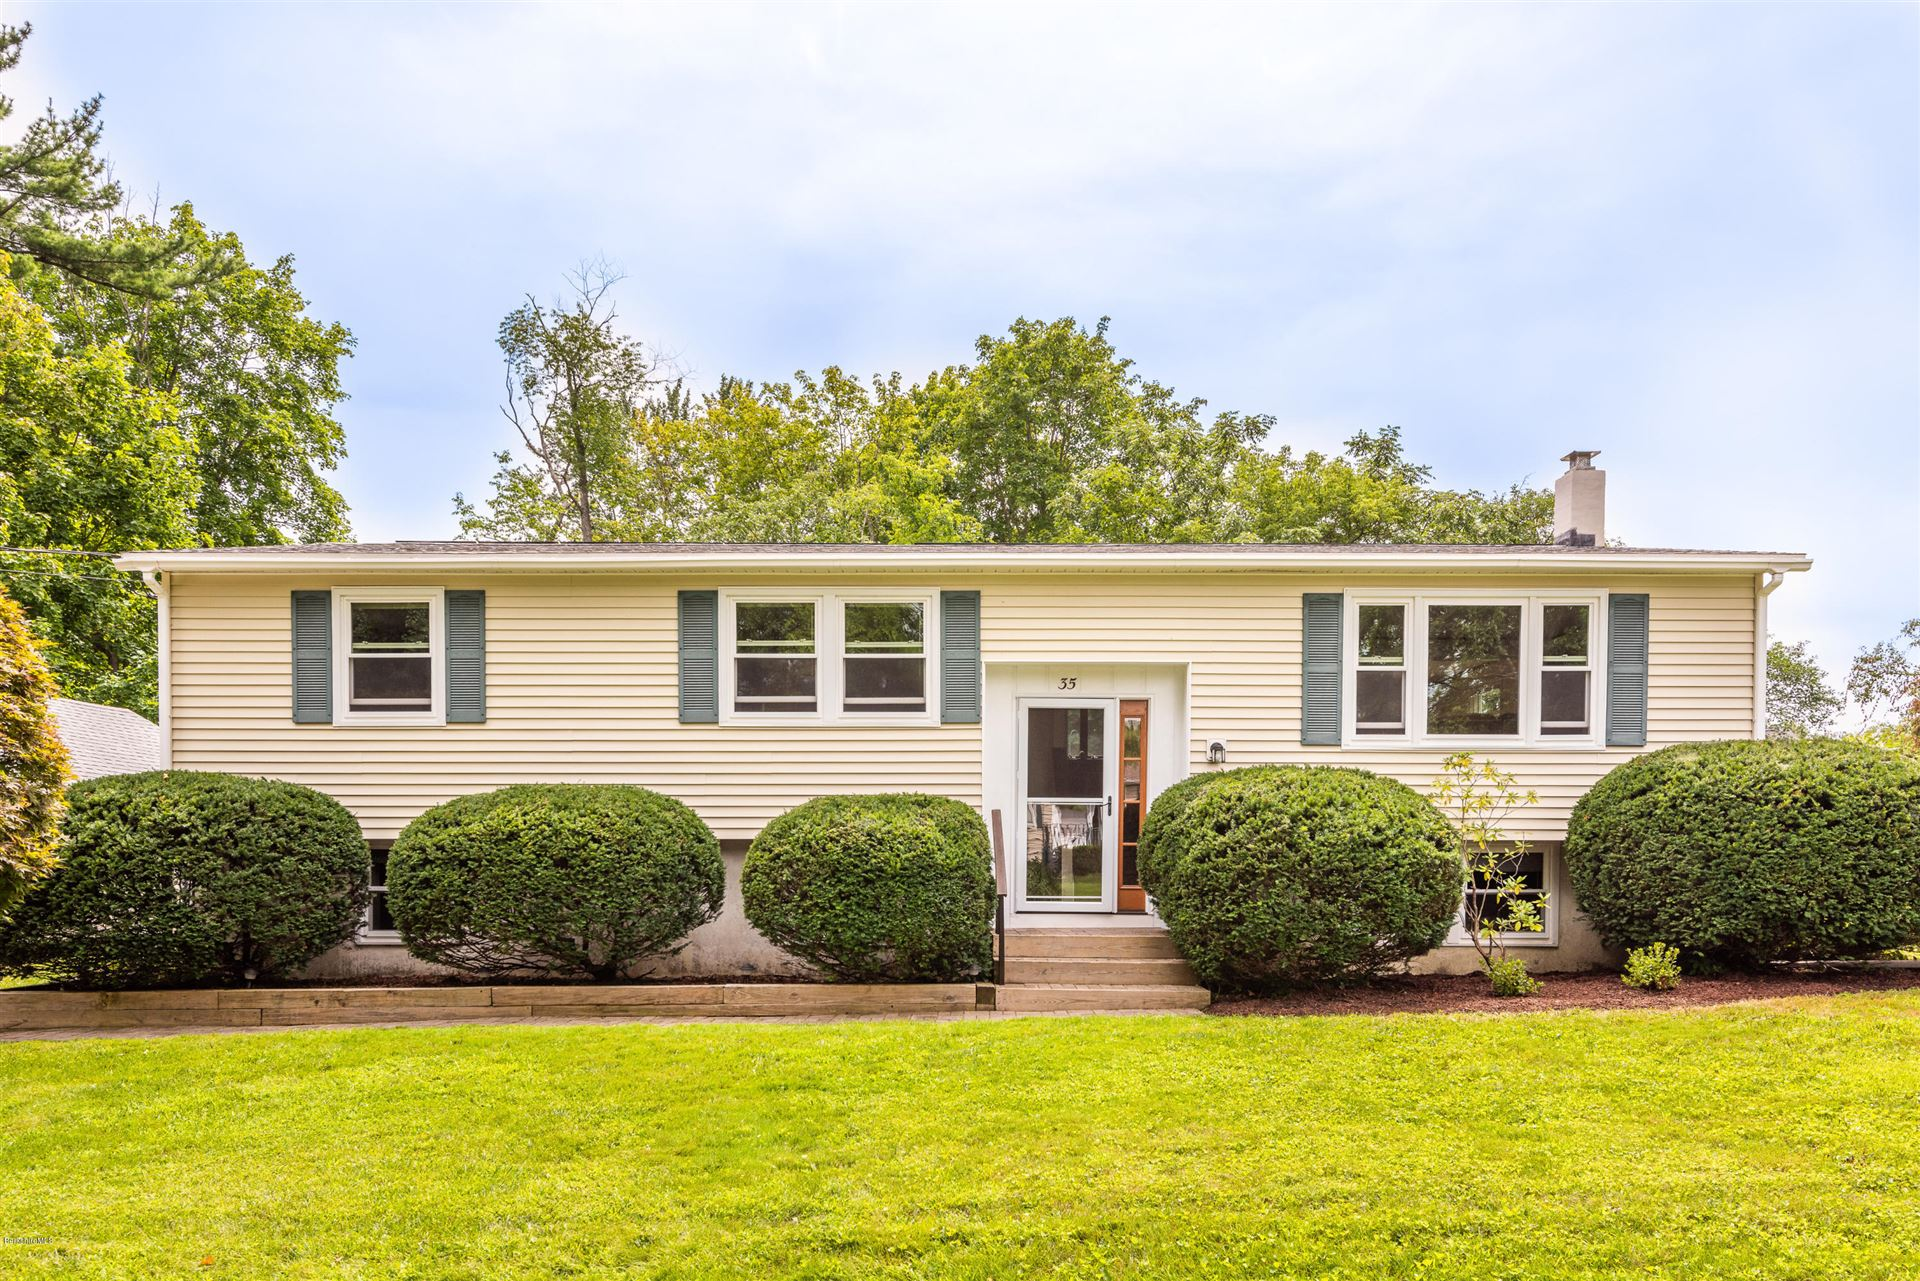 35 Oliver Ave, Pittsfield, MA 01201 - MLS#: 231944